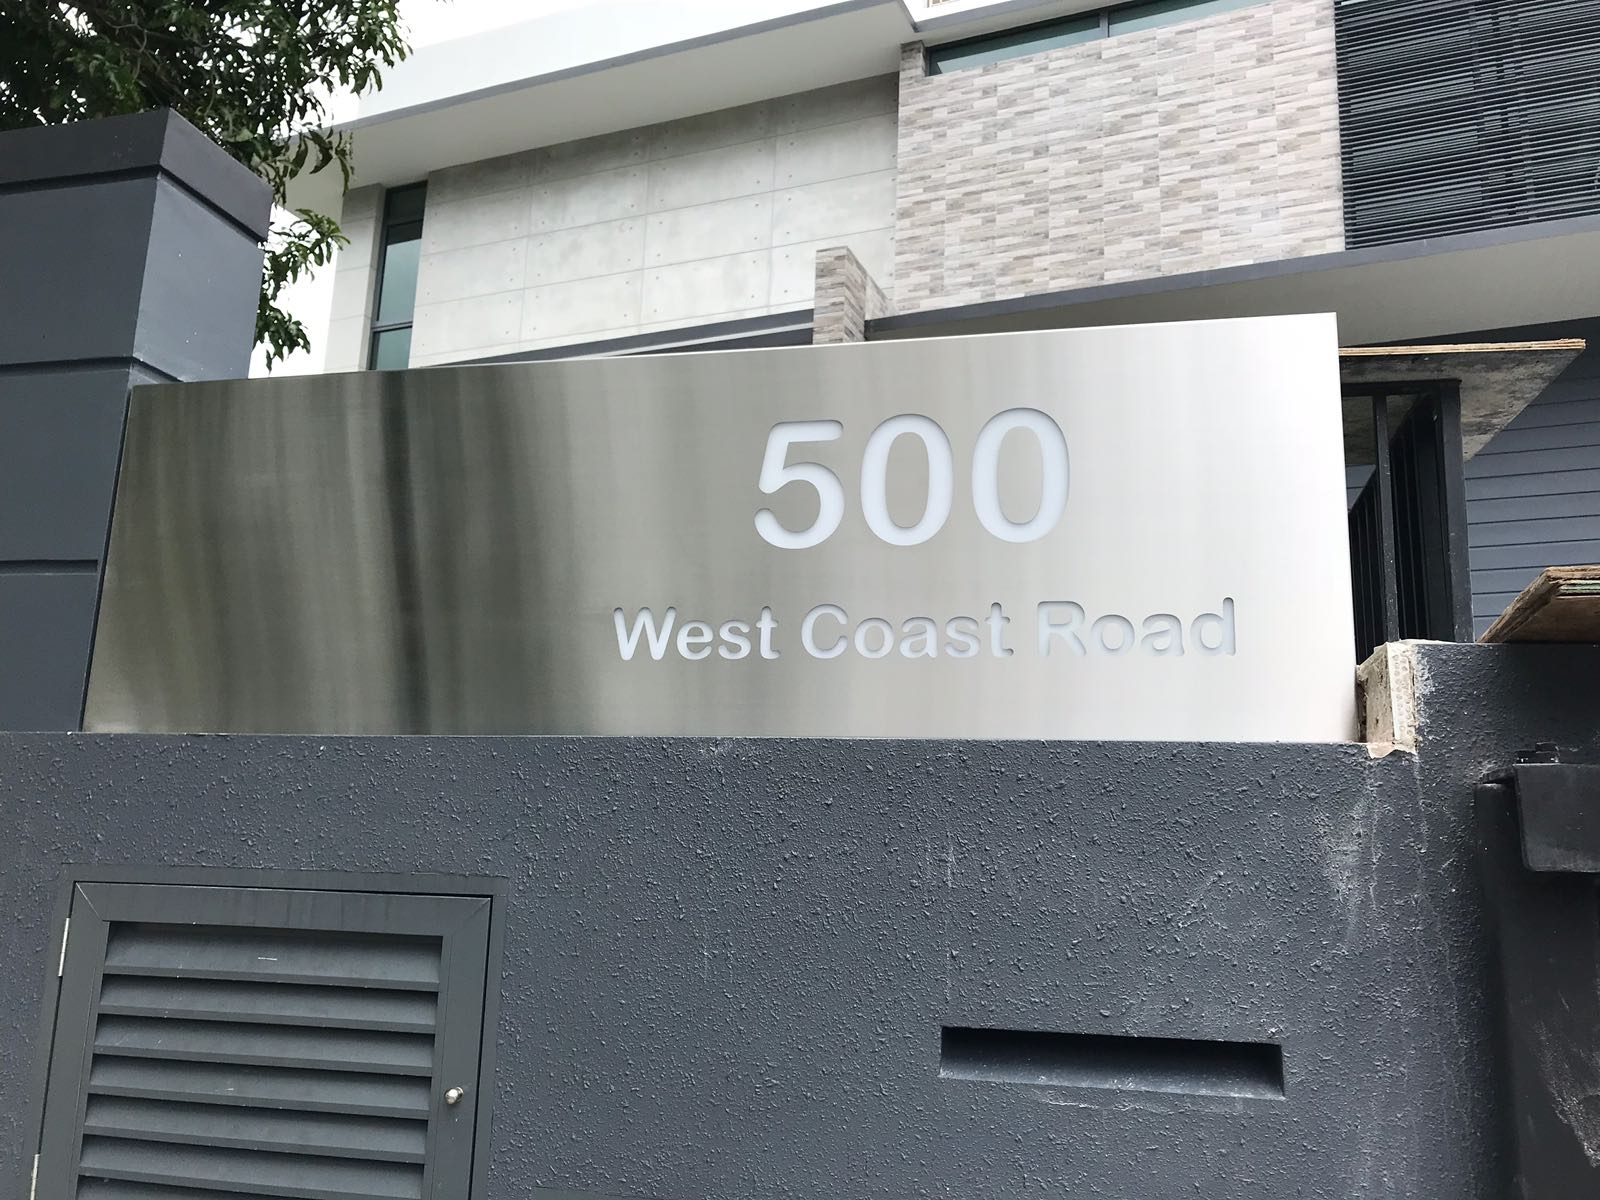 Stainless Steel House Number Light Box